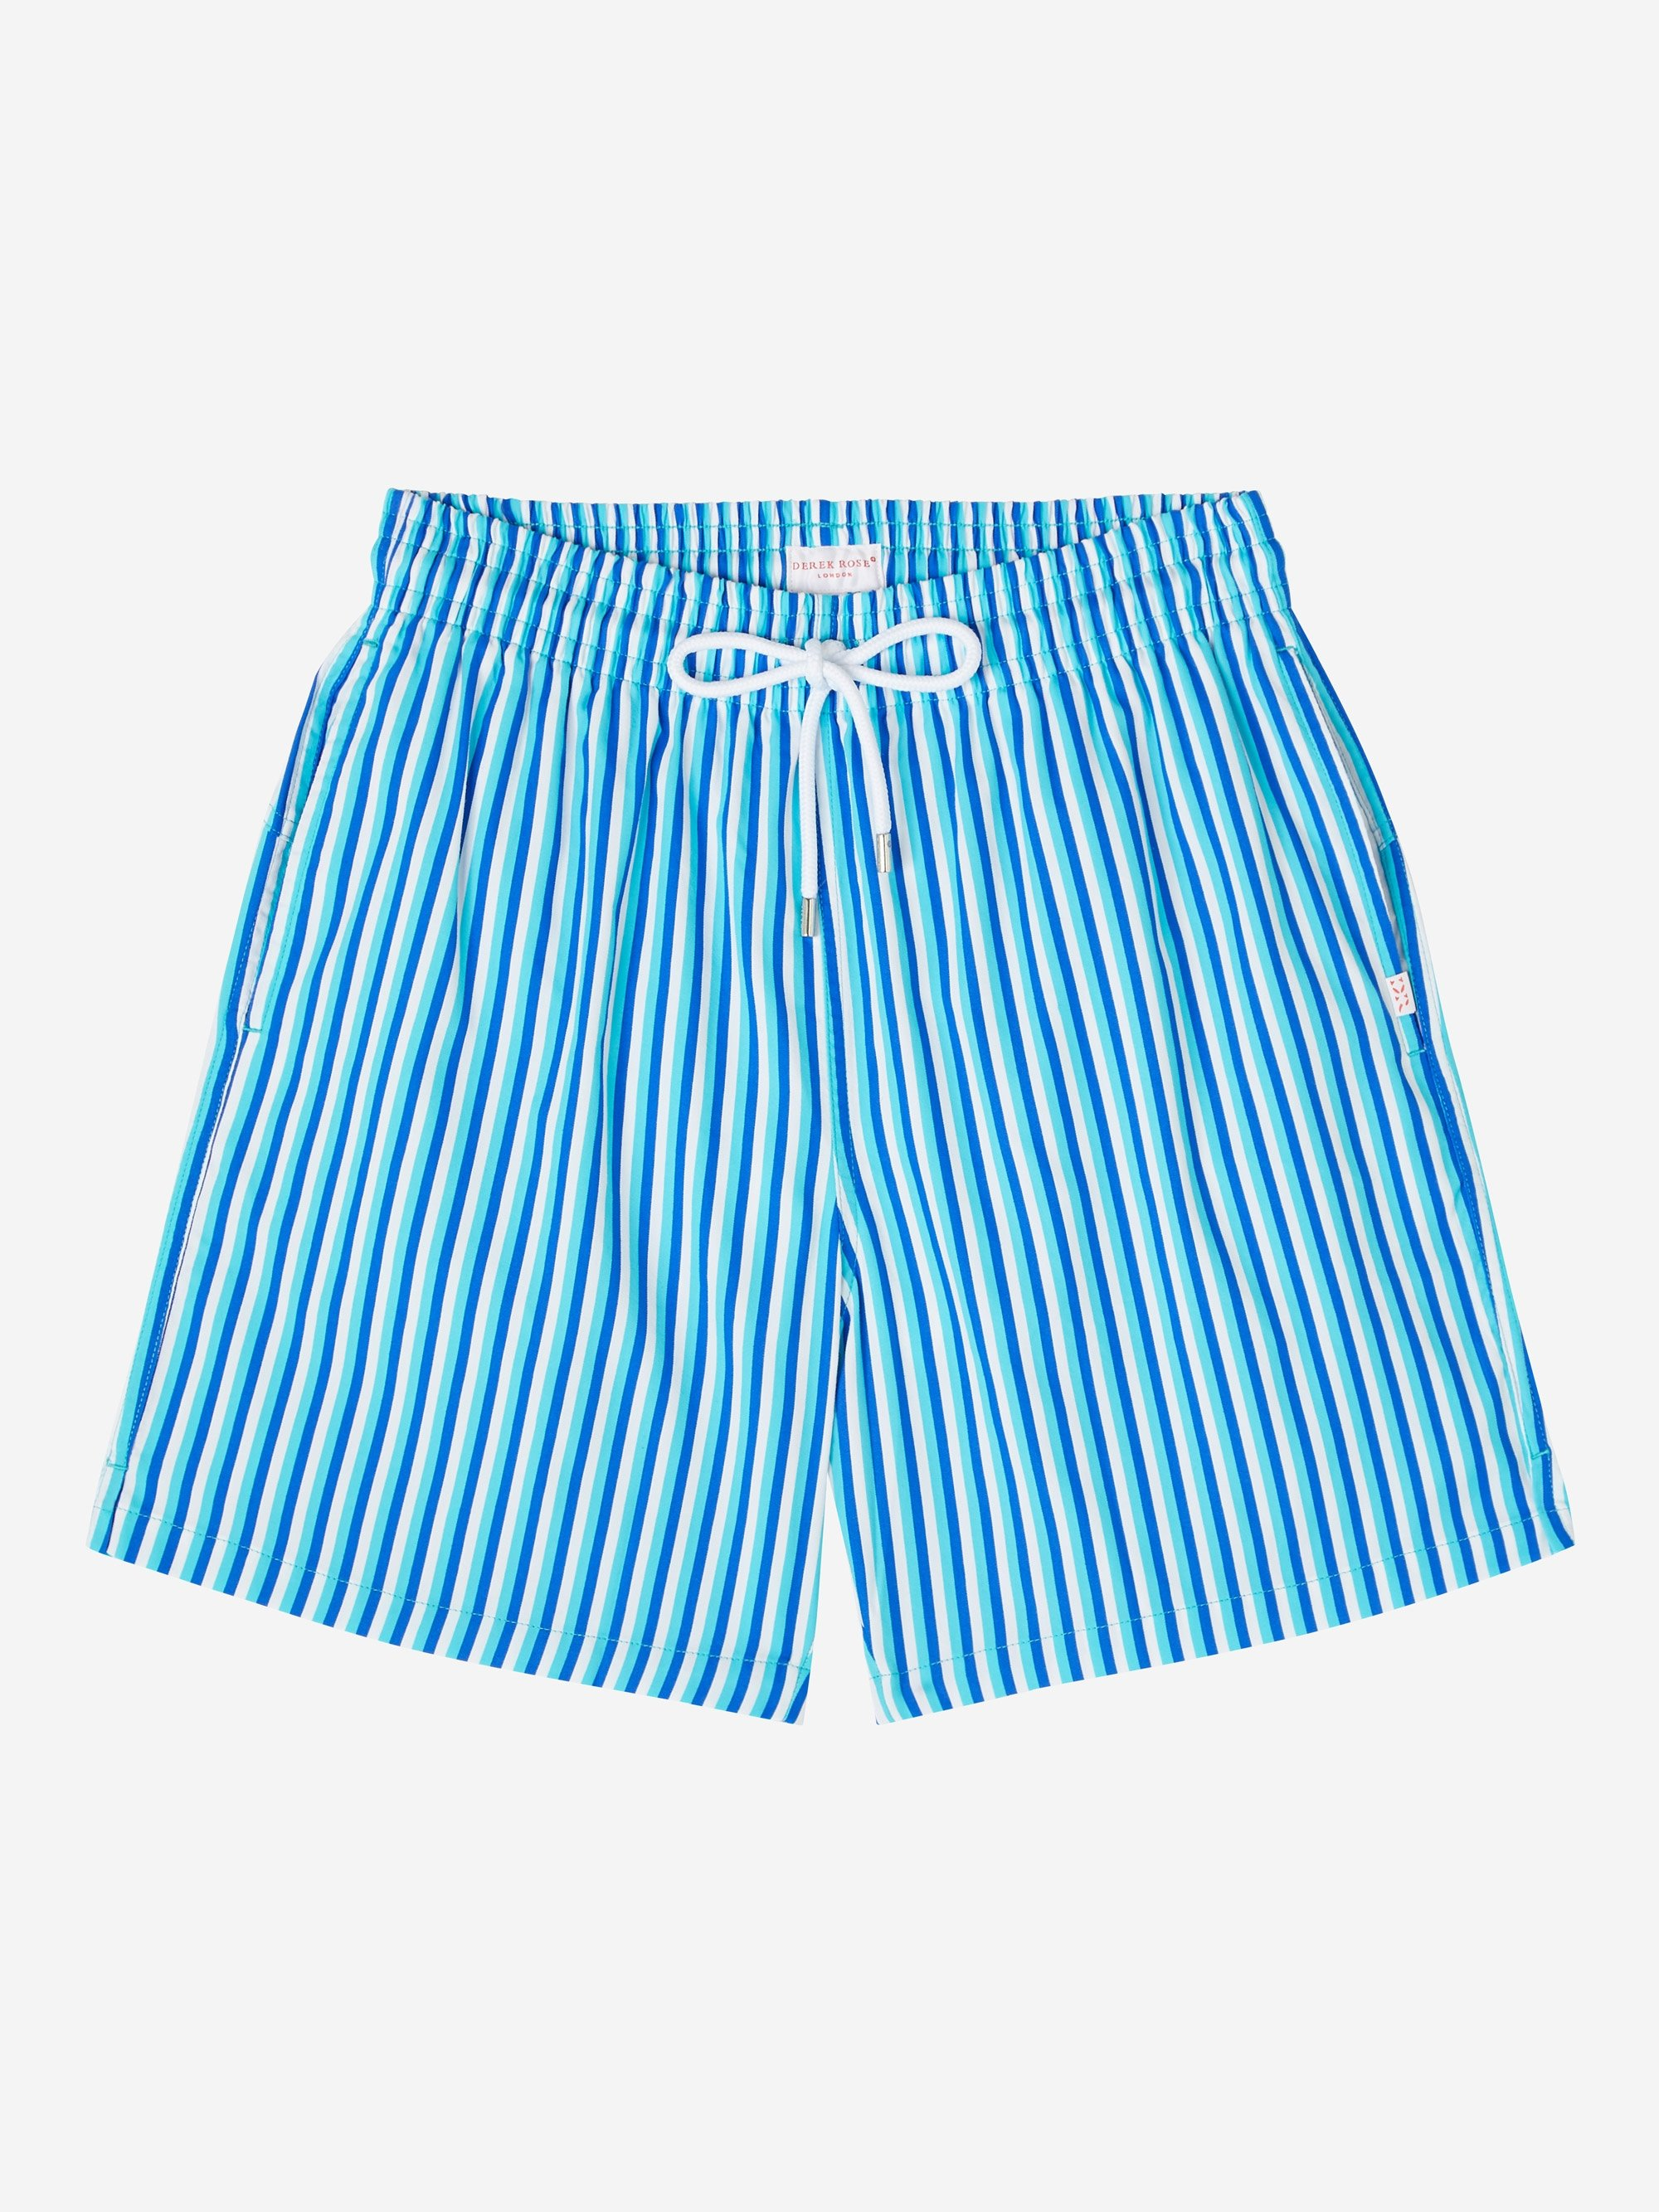 Men's Classic Fit Swim Shorts Bondi 3 Blue